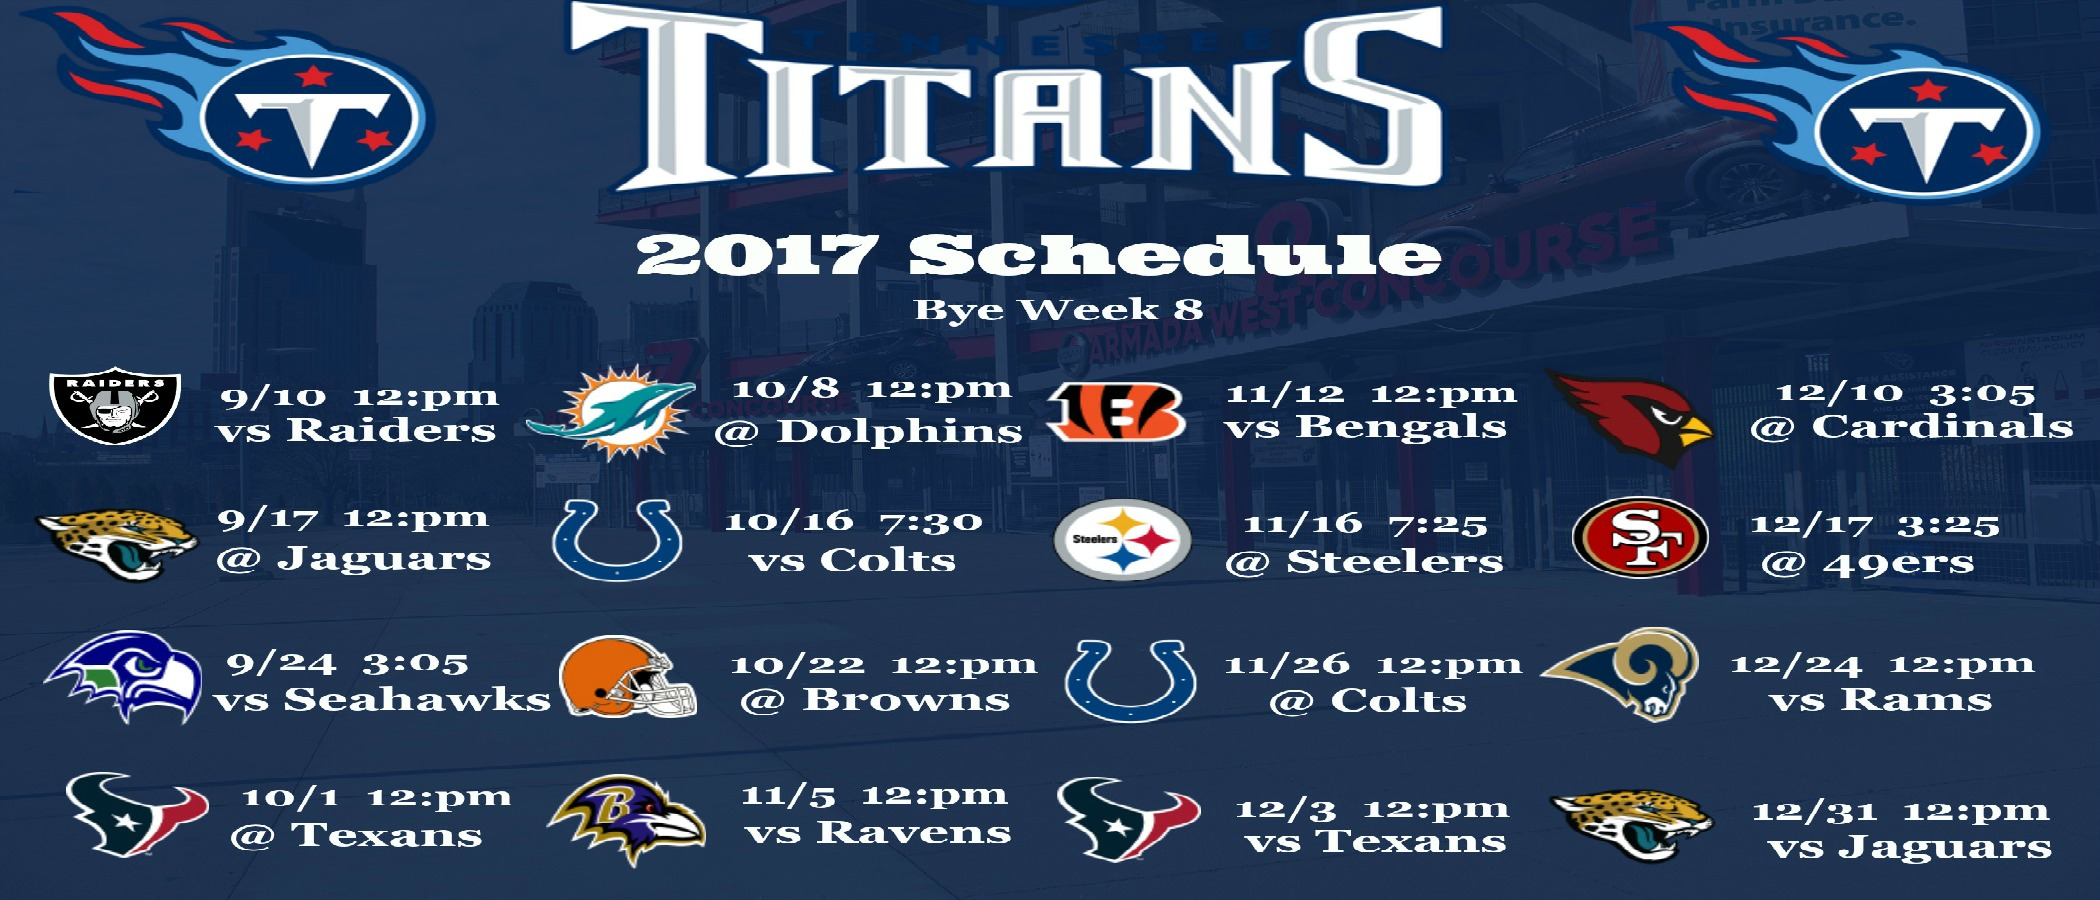 Tennessee Titans 2017 Schedule Wallpaper 900